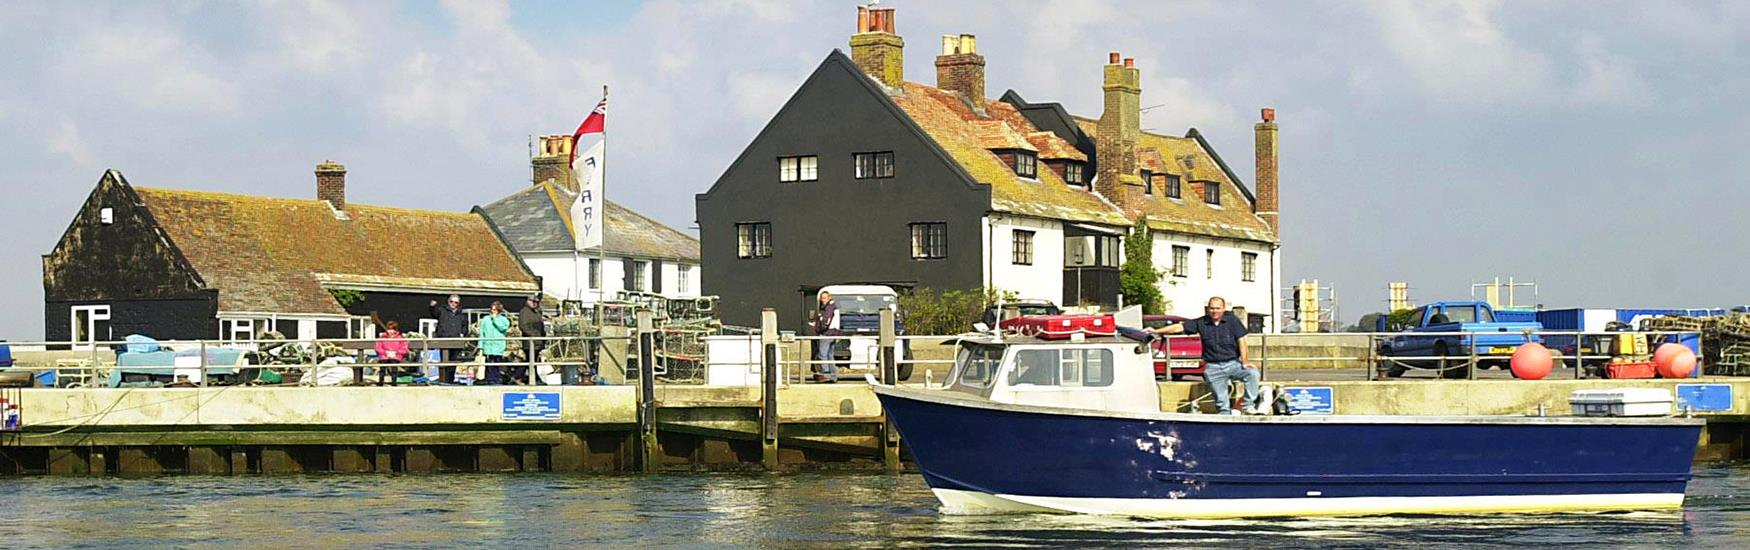 Mudeford Ferry moored alongside the quay